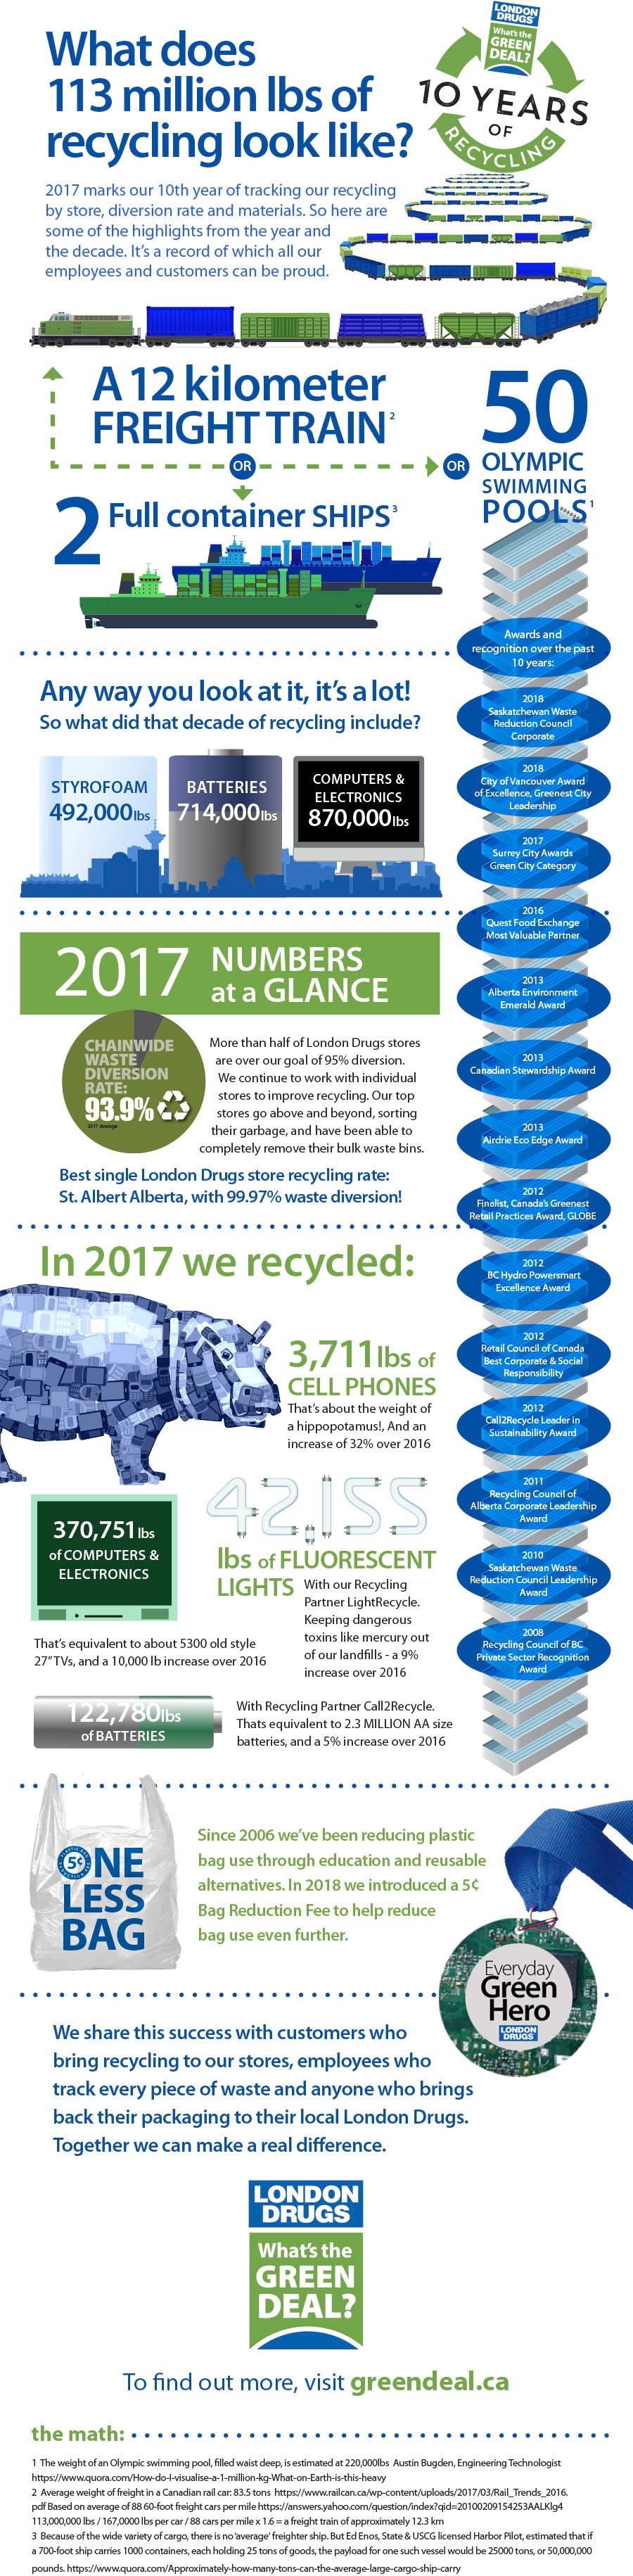 10 years of London Drugs Recycling